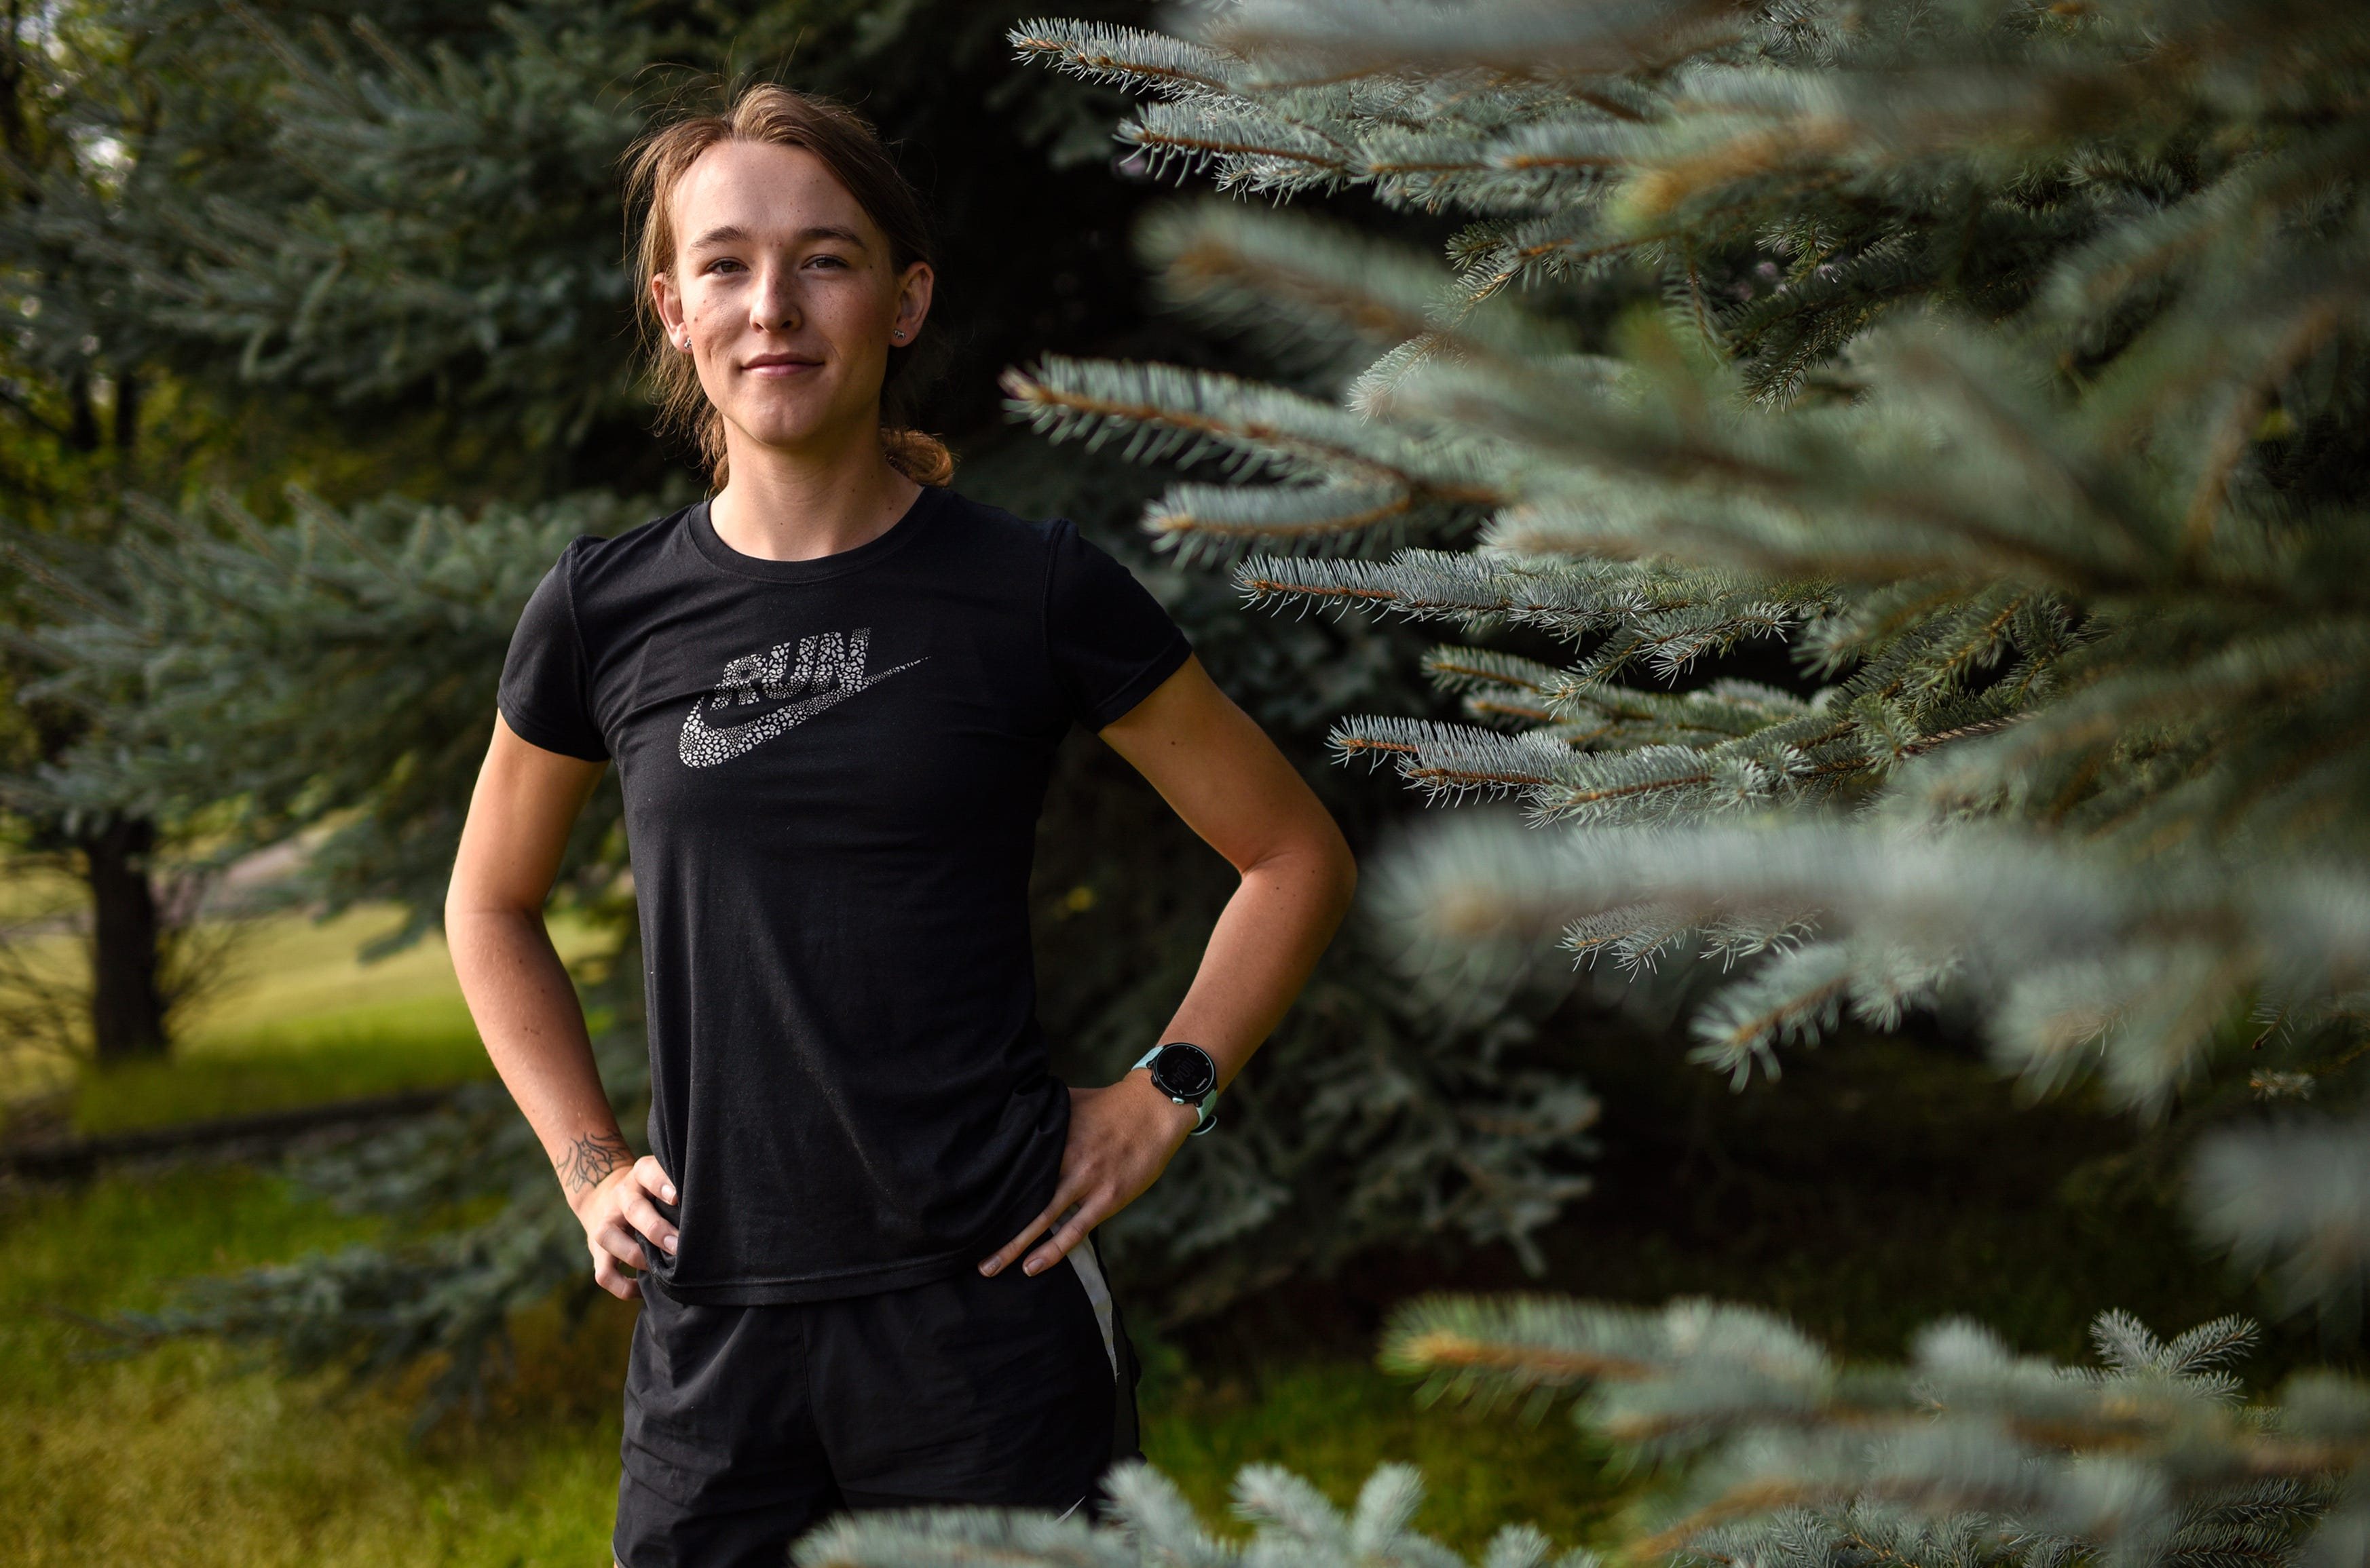 University of Montana runner June Eastwood was the first transgender athlete to compete in NCAA Division I cross country.